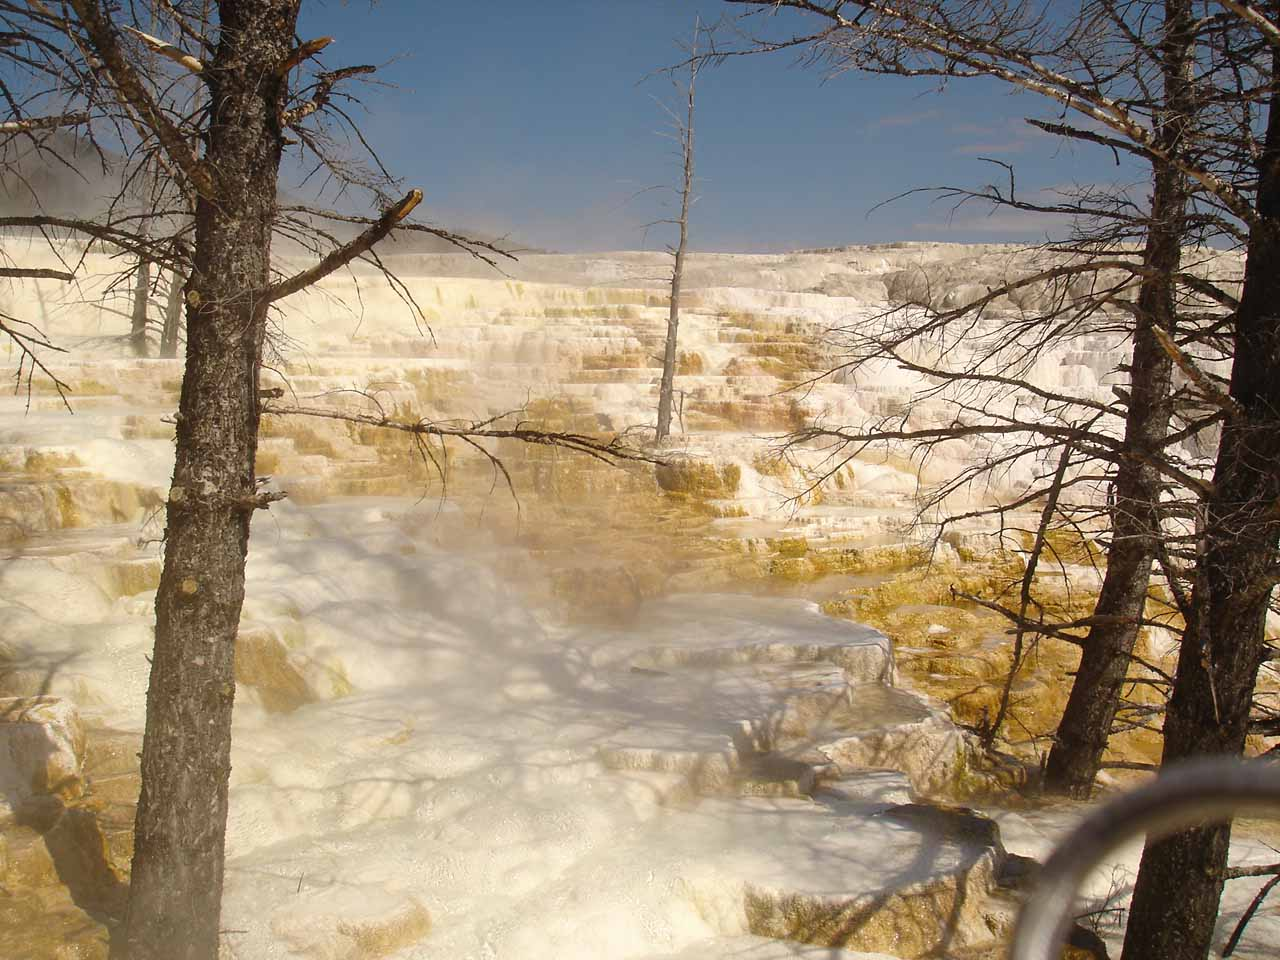 Osprey Falls was near Mammoth Hot Springs where we saw a few active springs like this one called Canary Spring